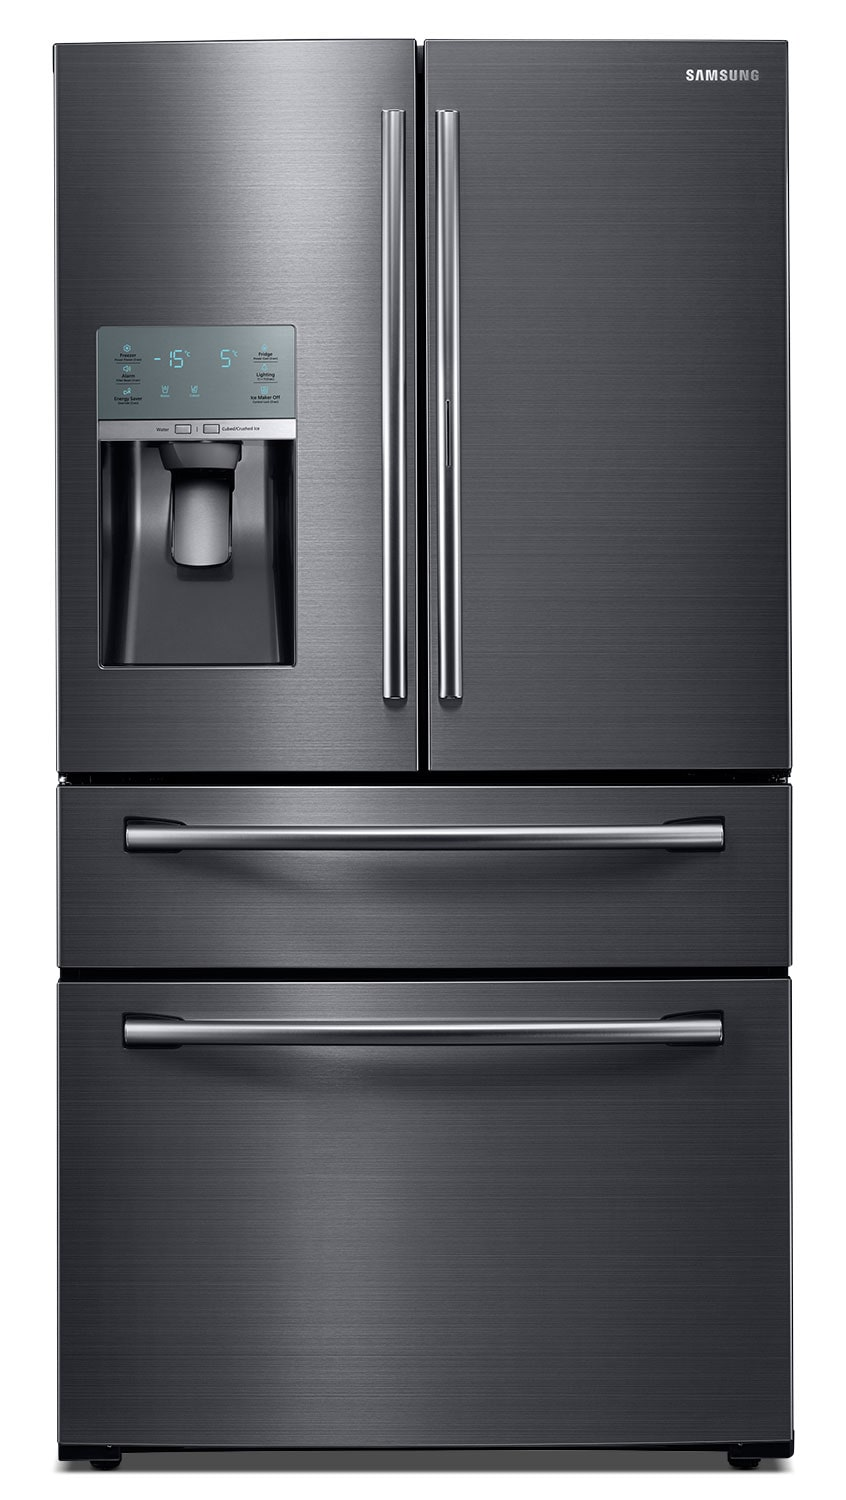 Refrigerators and Freezers - Samsung Black Stainless Steel French-Door Refrigerator (28 Cu. Ft.) - RF28JBEDBSG/AA